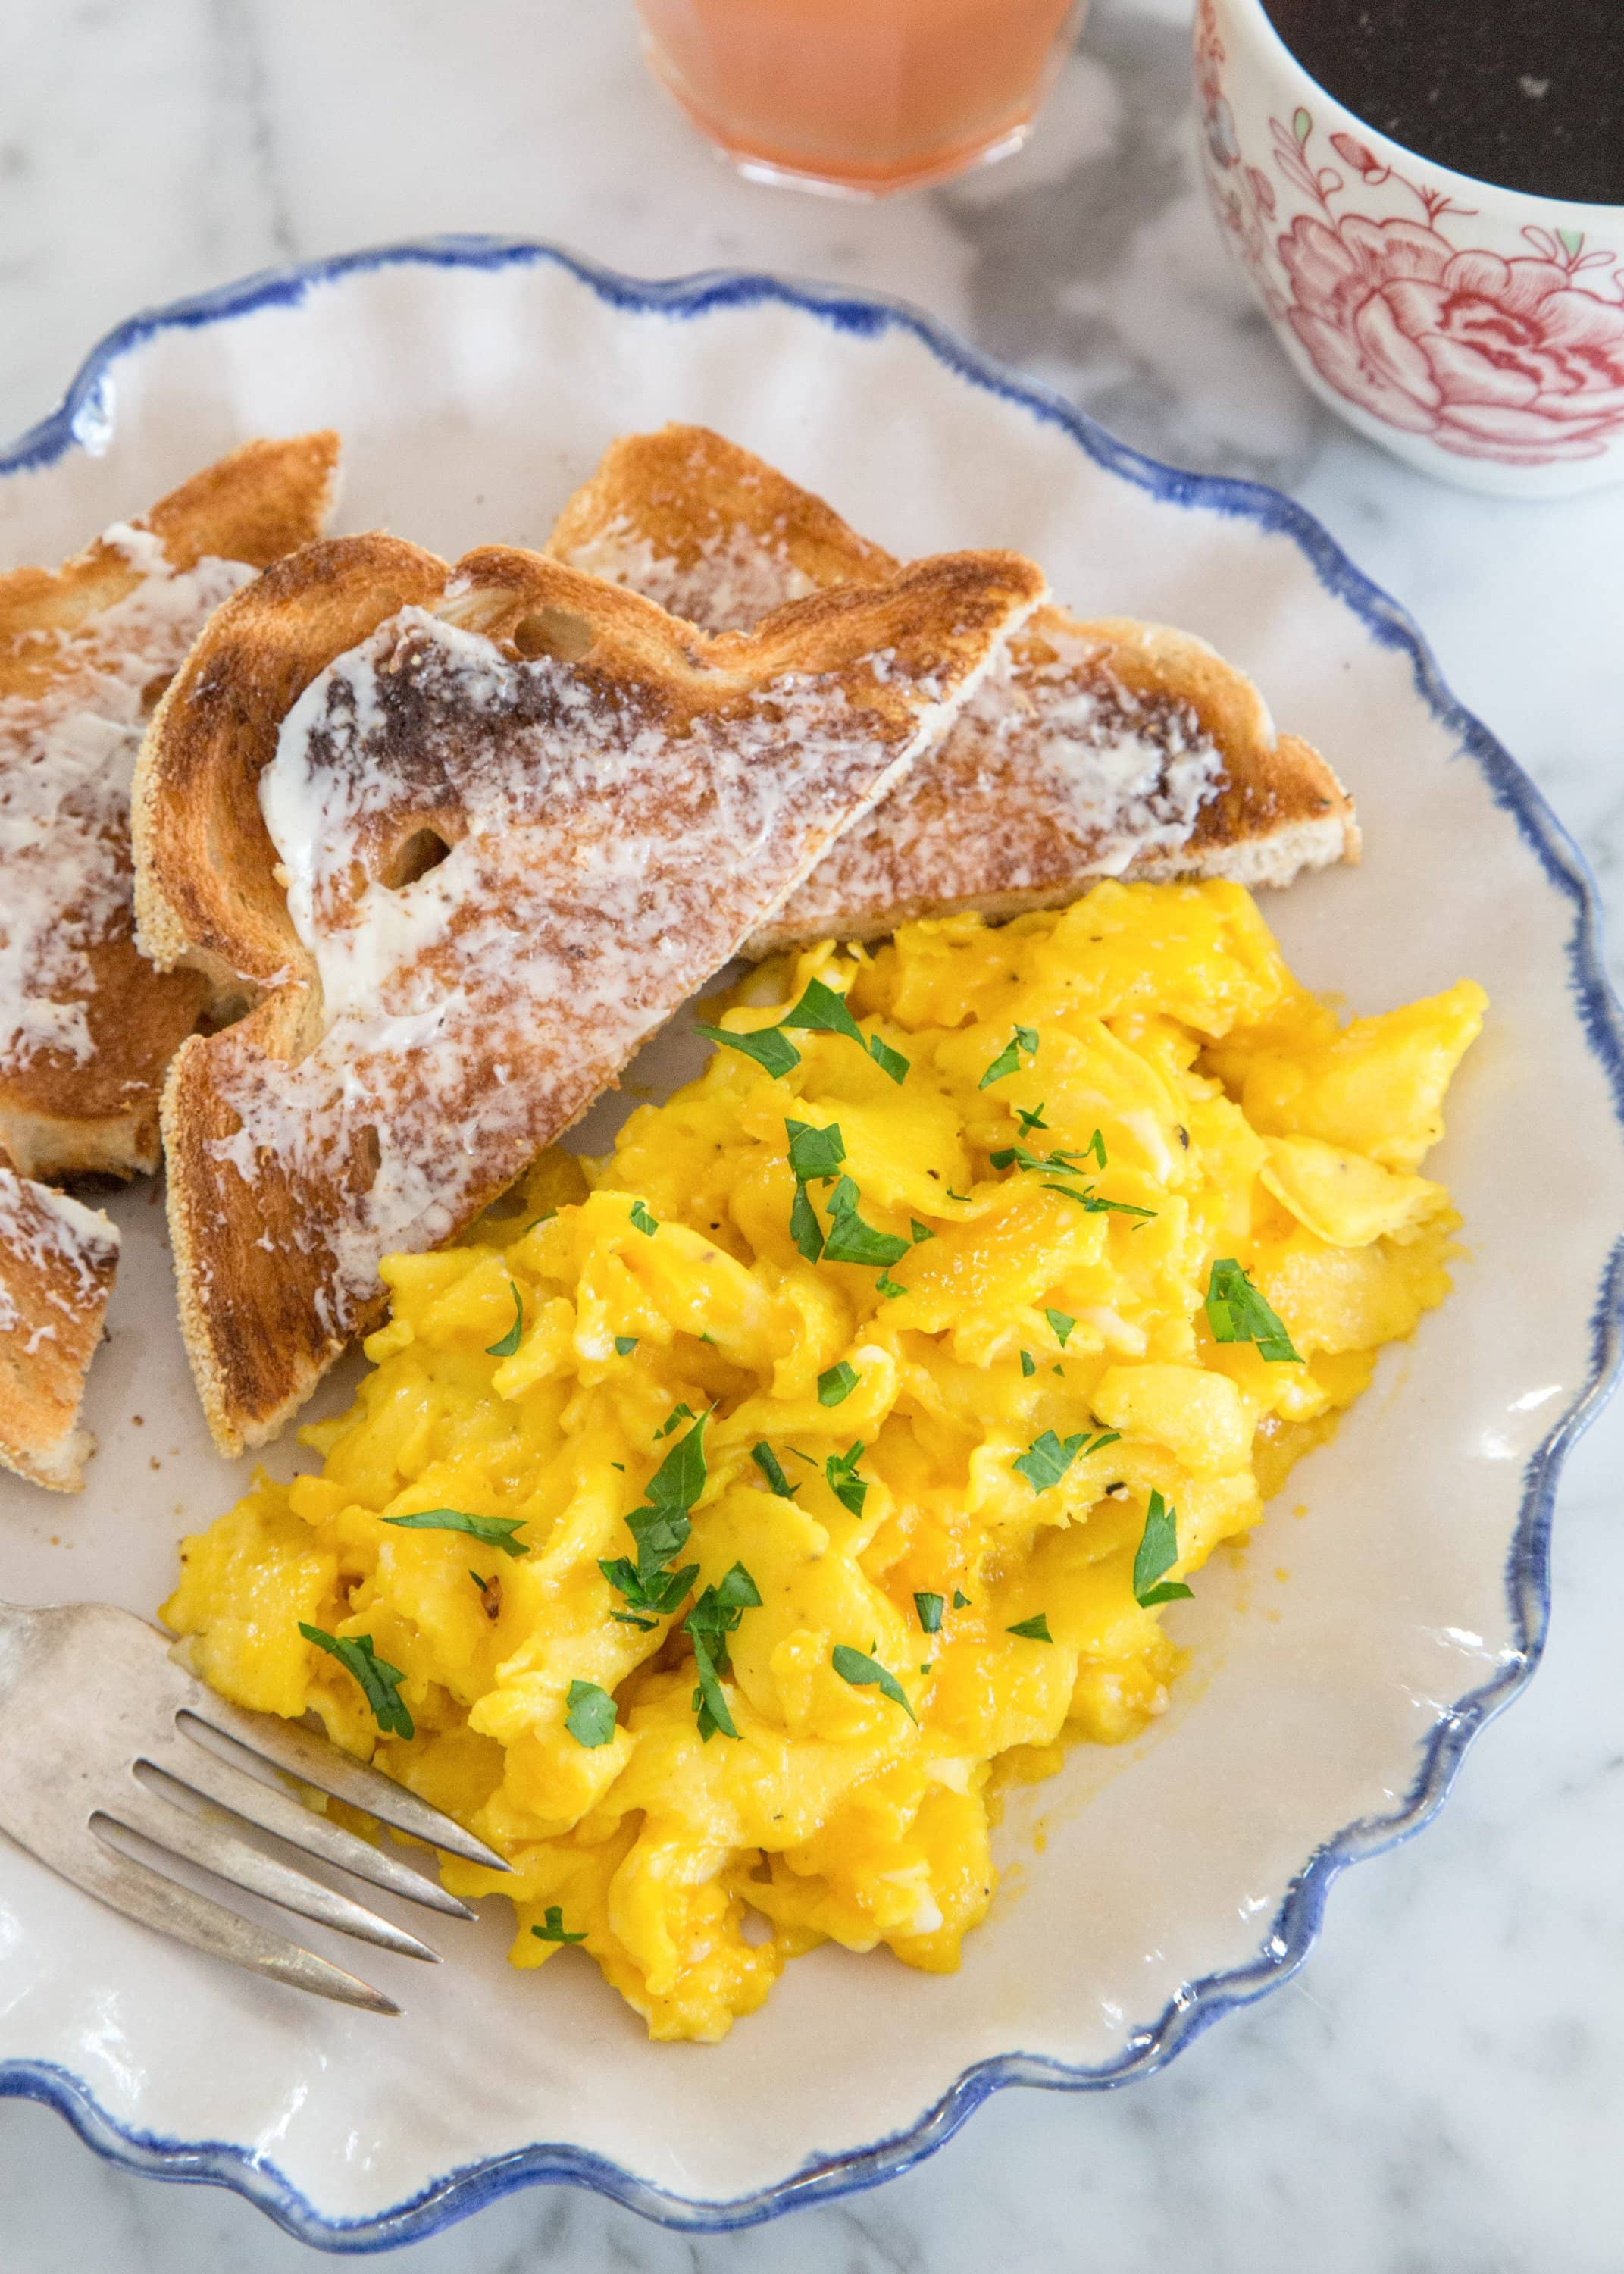 Scrambled eggs and toast on a plate